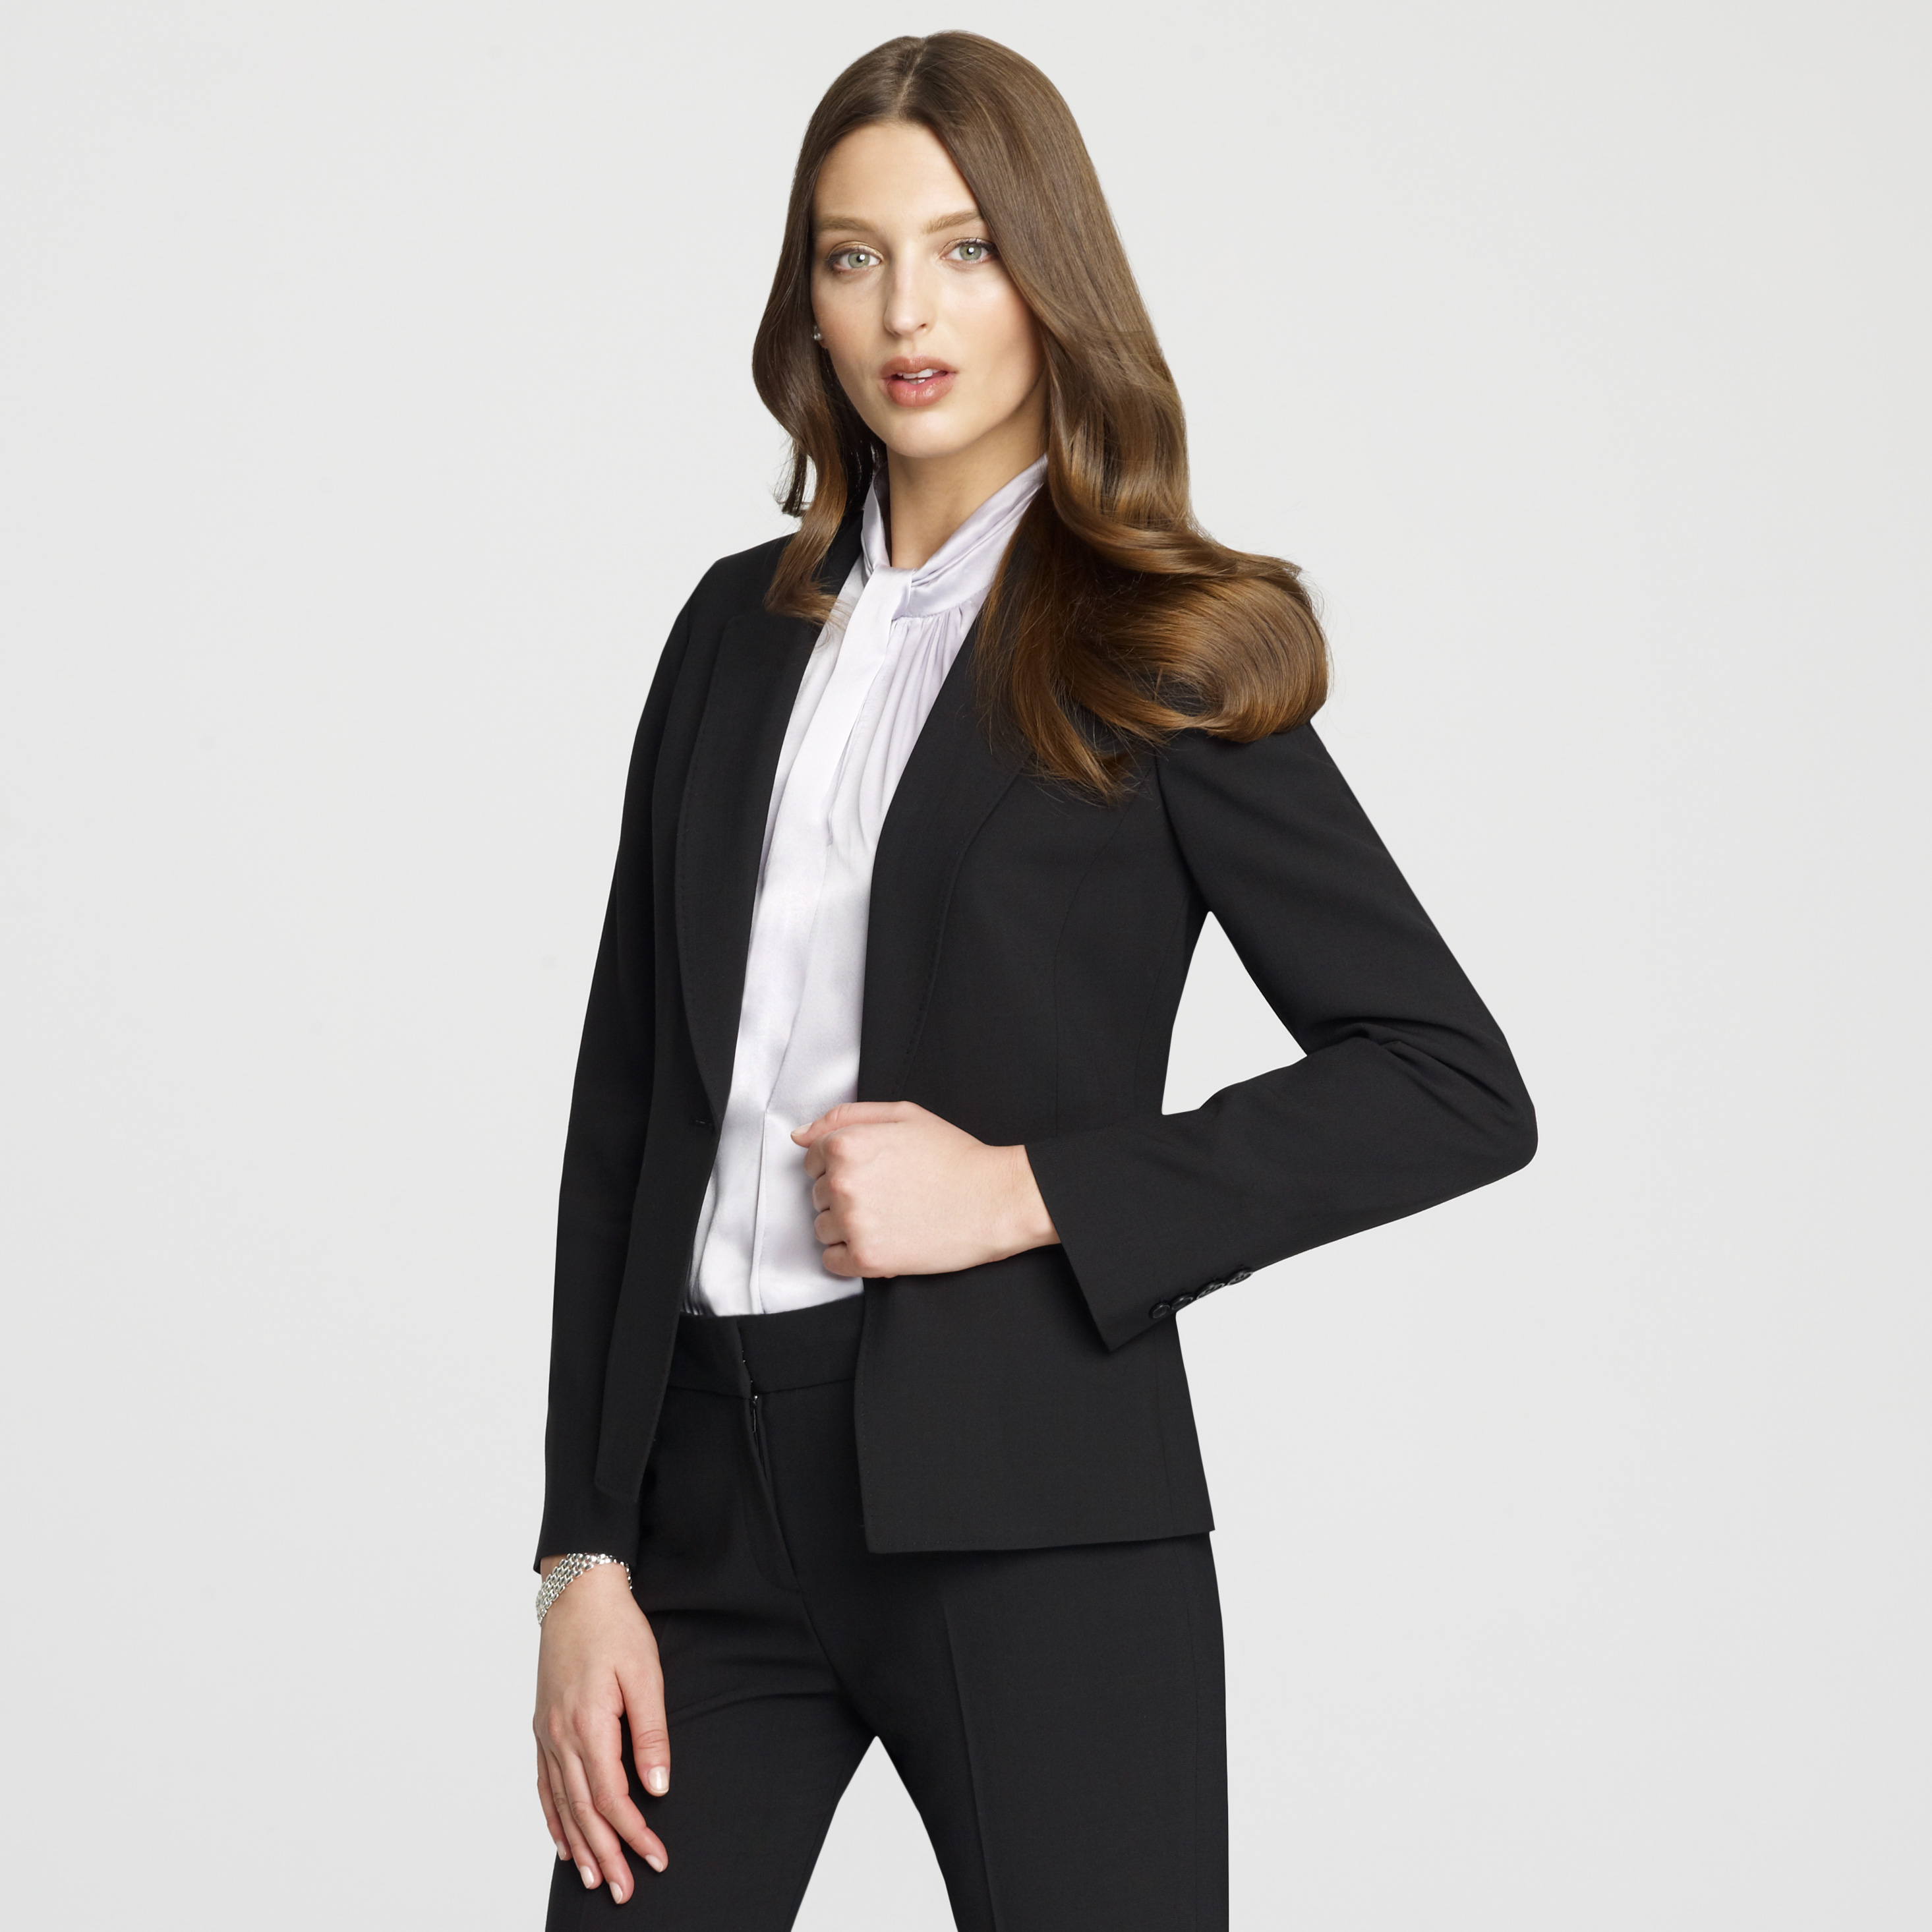 what to wear for mba interview